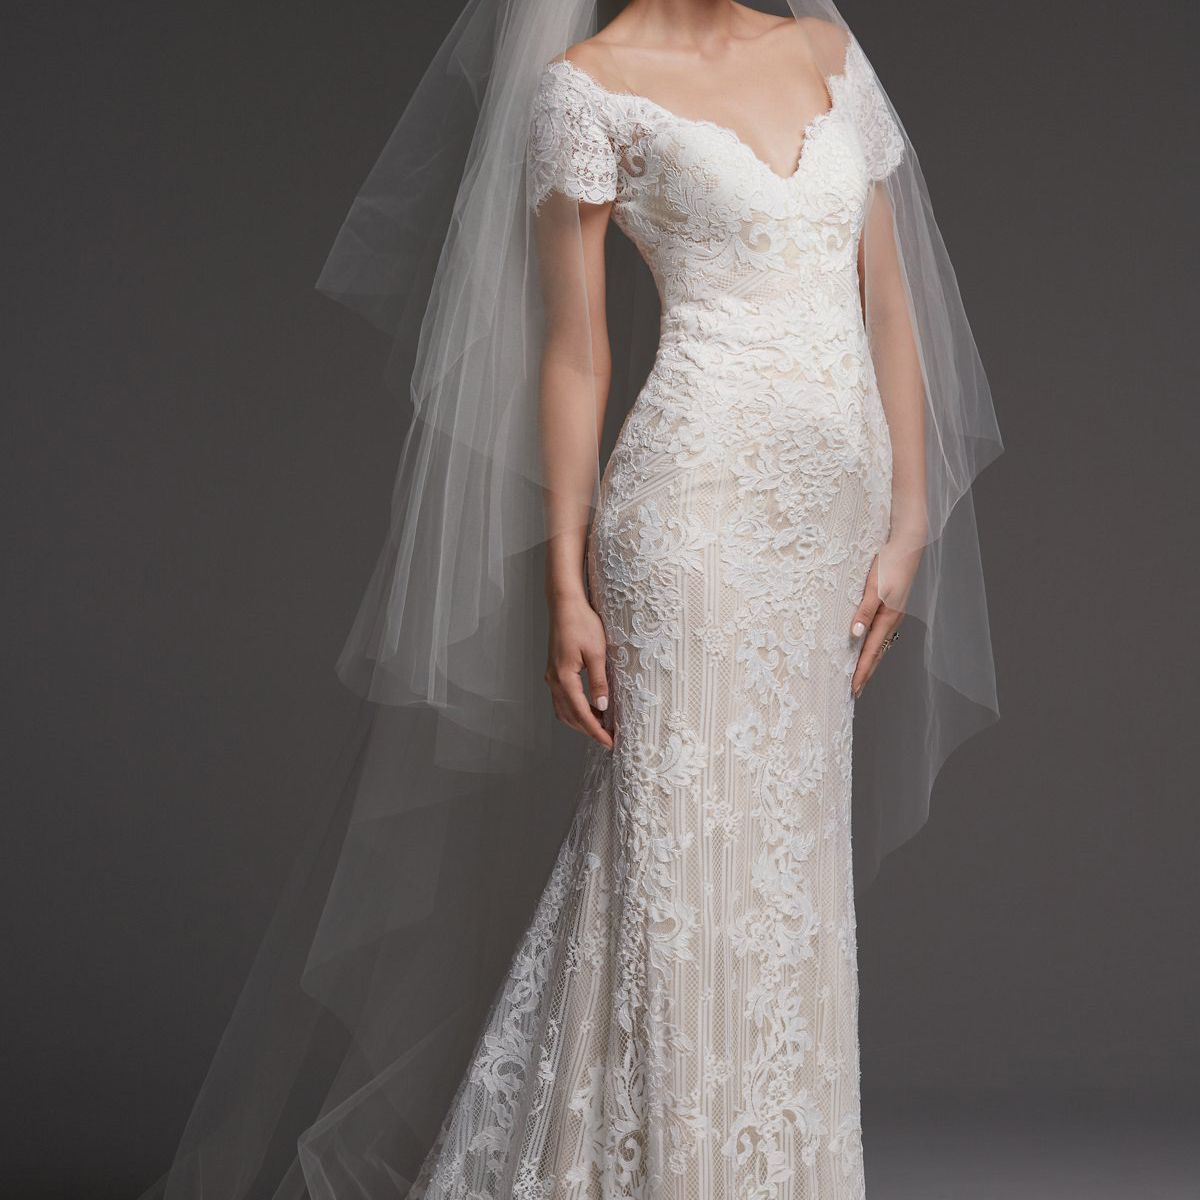 Model in lace off-the-shoulder wedding gown